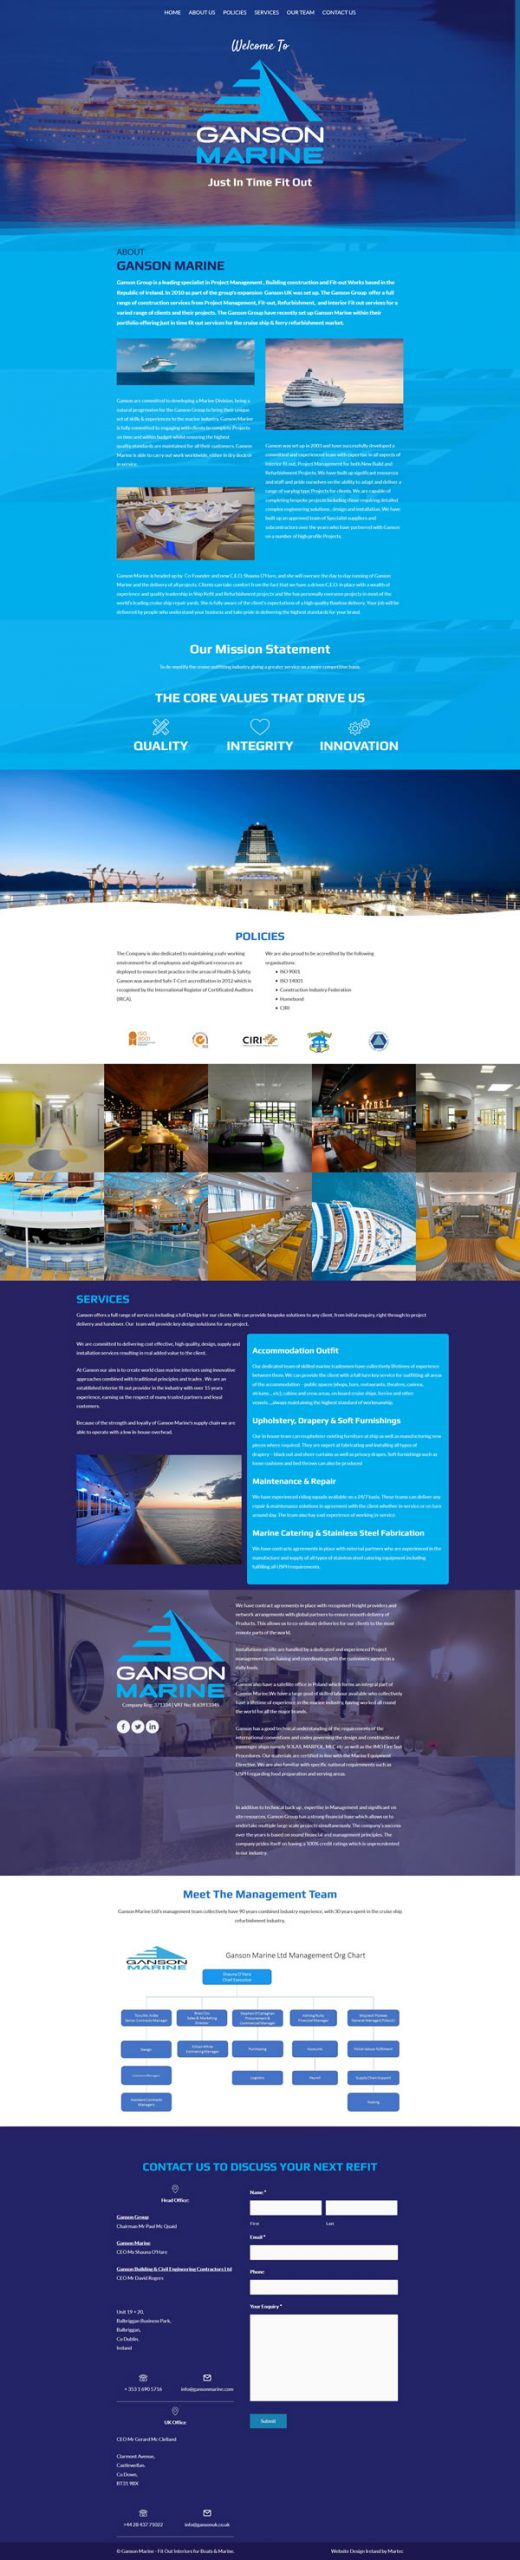 Ganson Marine – Fit Out Interiors for Boats & Marine